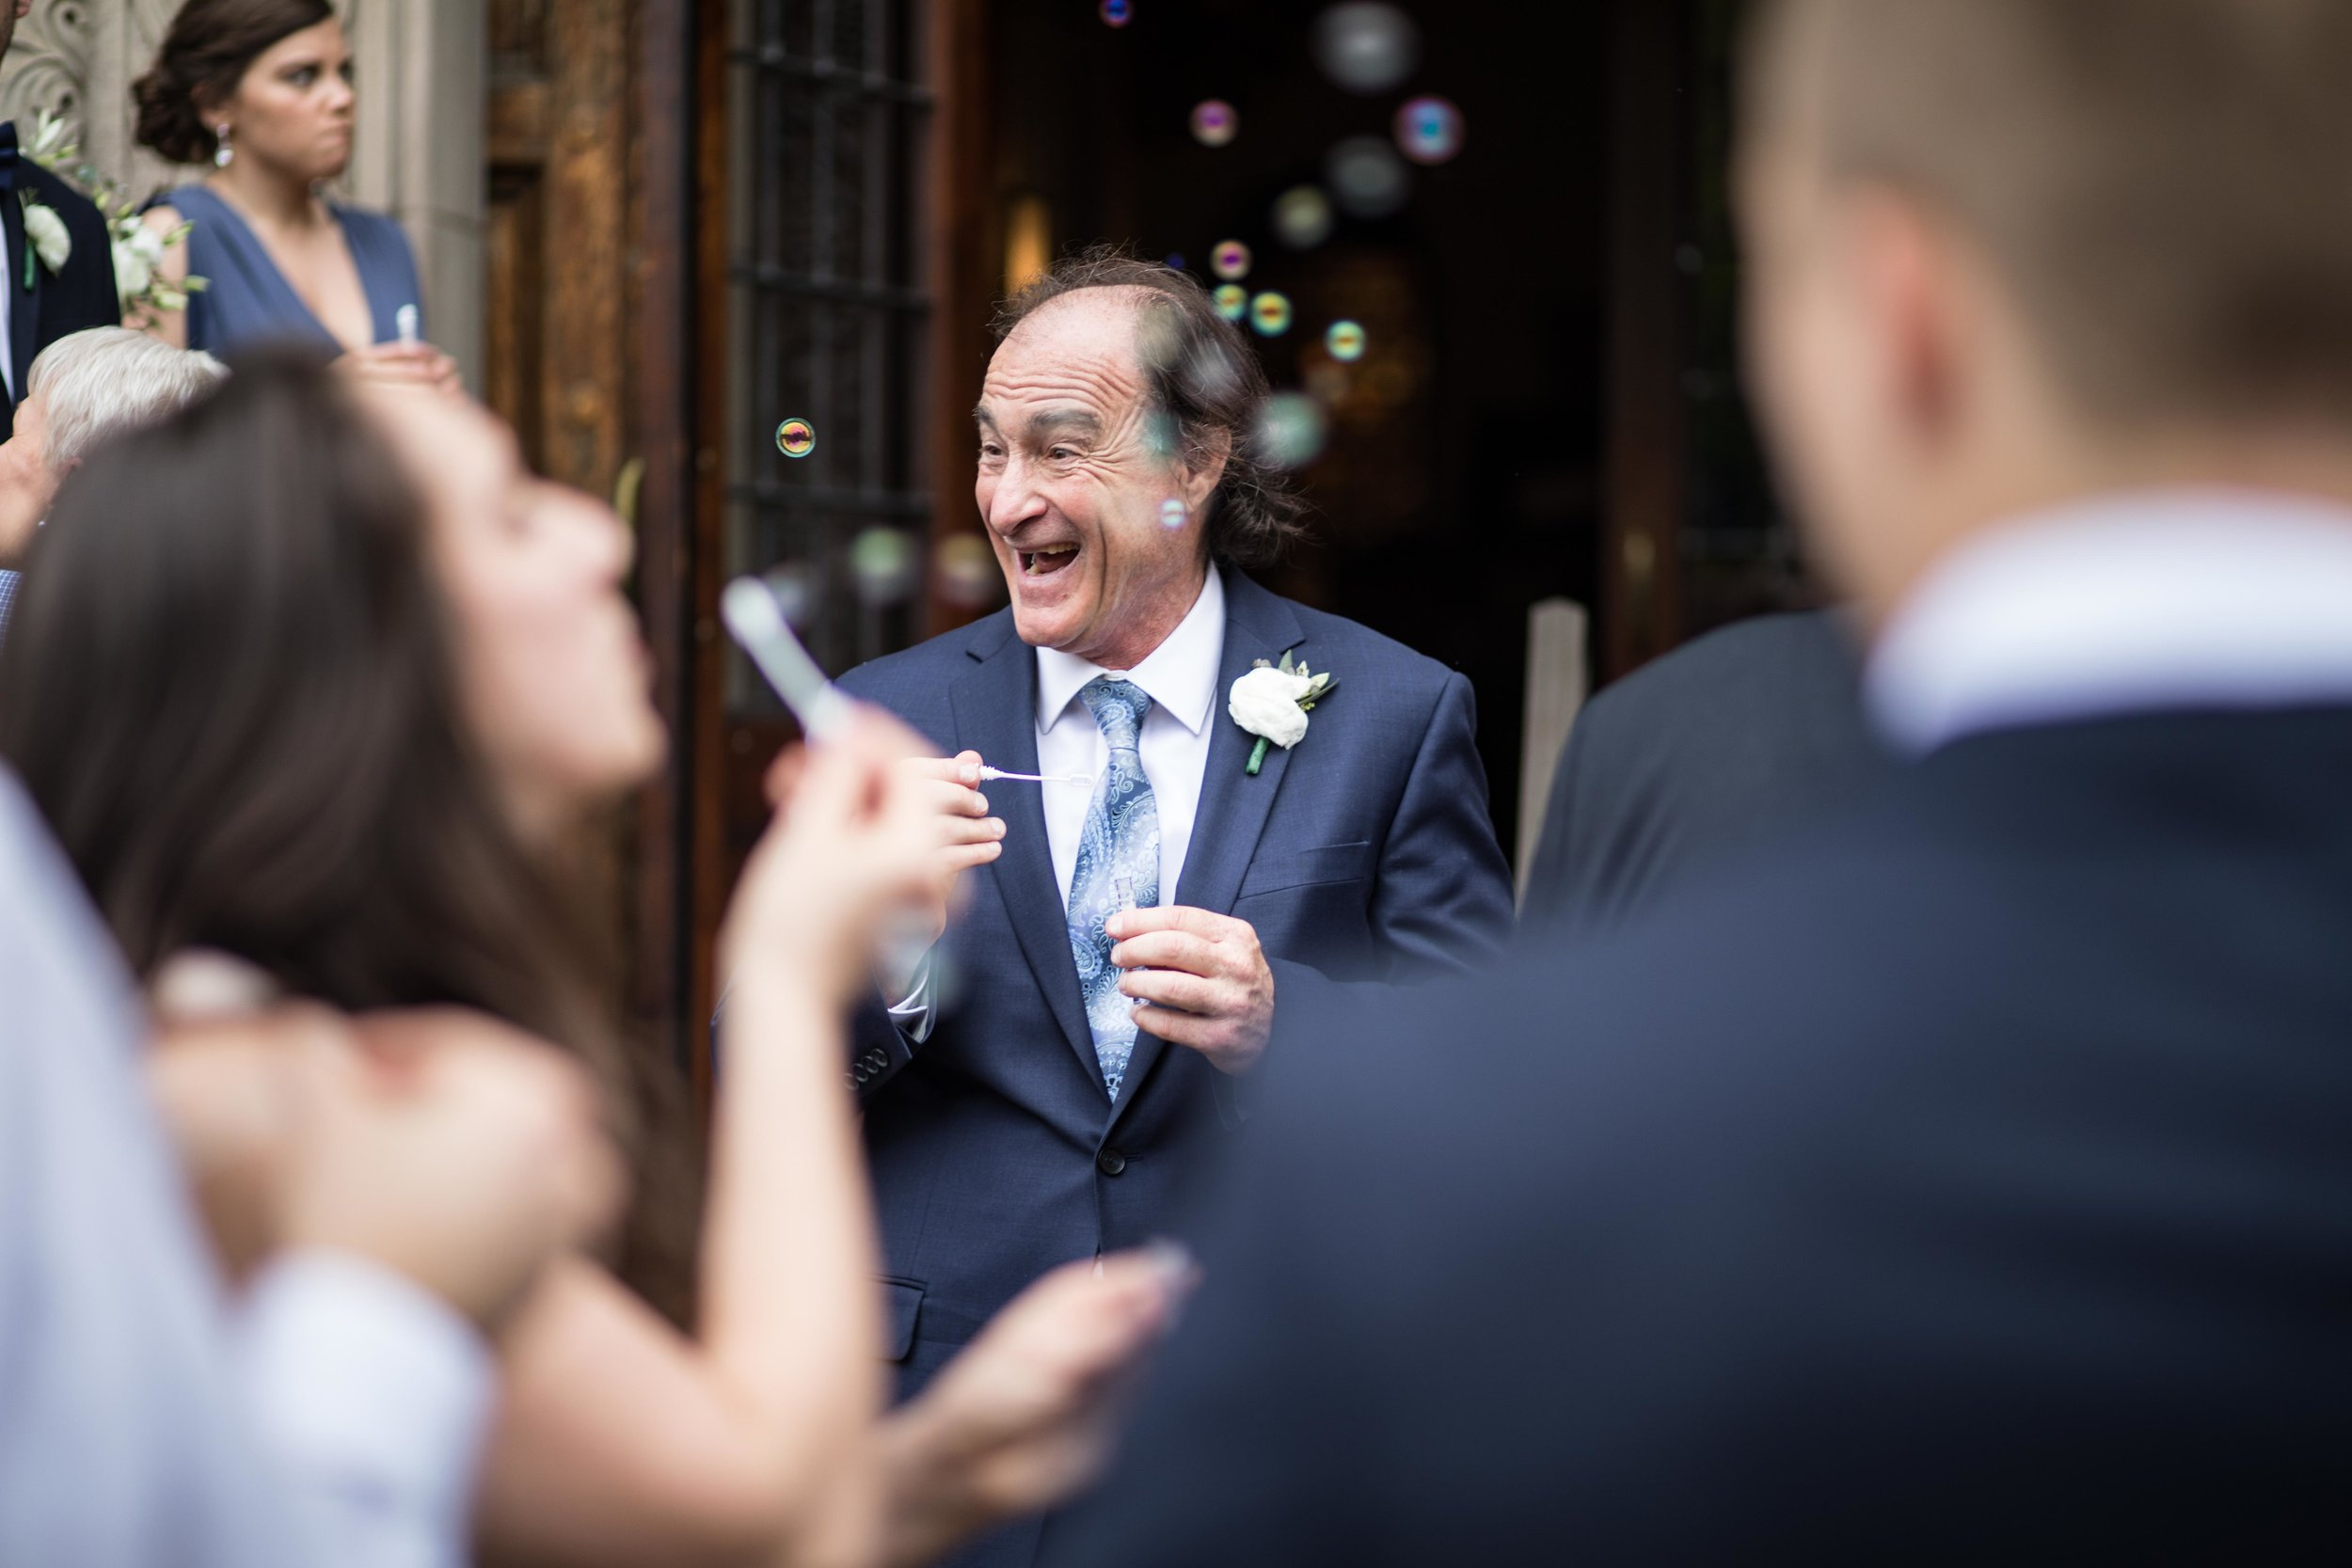 Father of the Groom blowing bubbles and laughing